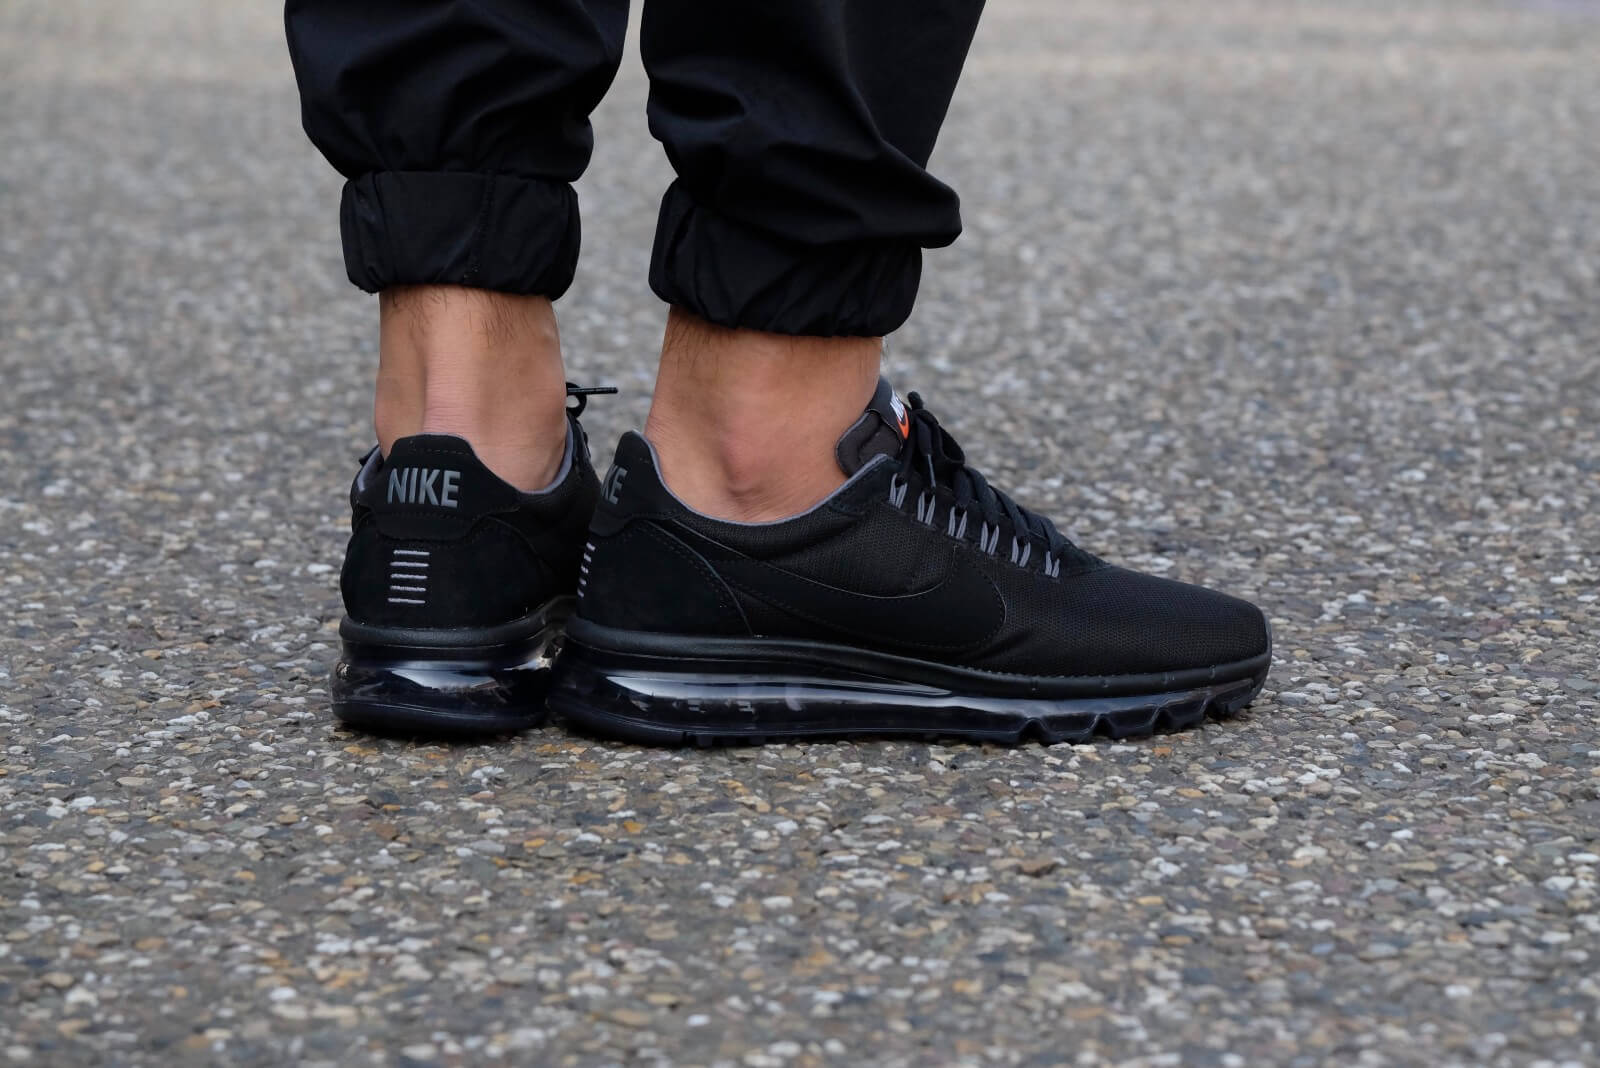 Nike Air Max LD Zero BlackBlack Dark Grey 848624 005